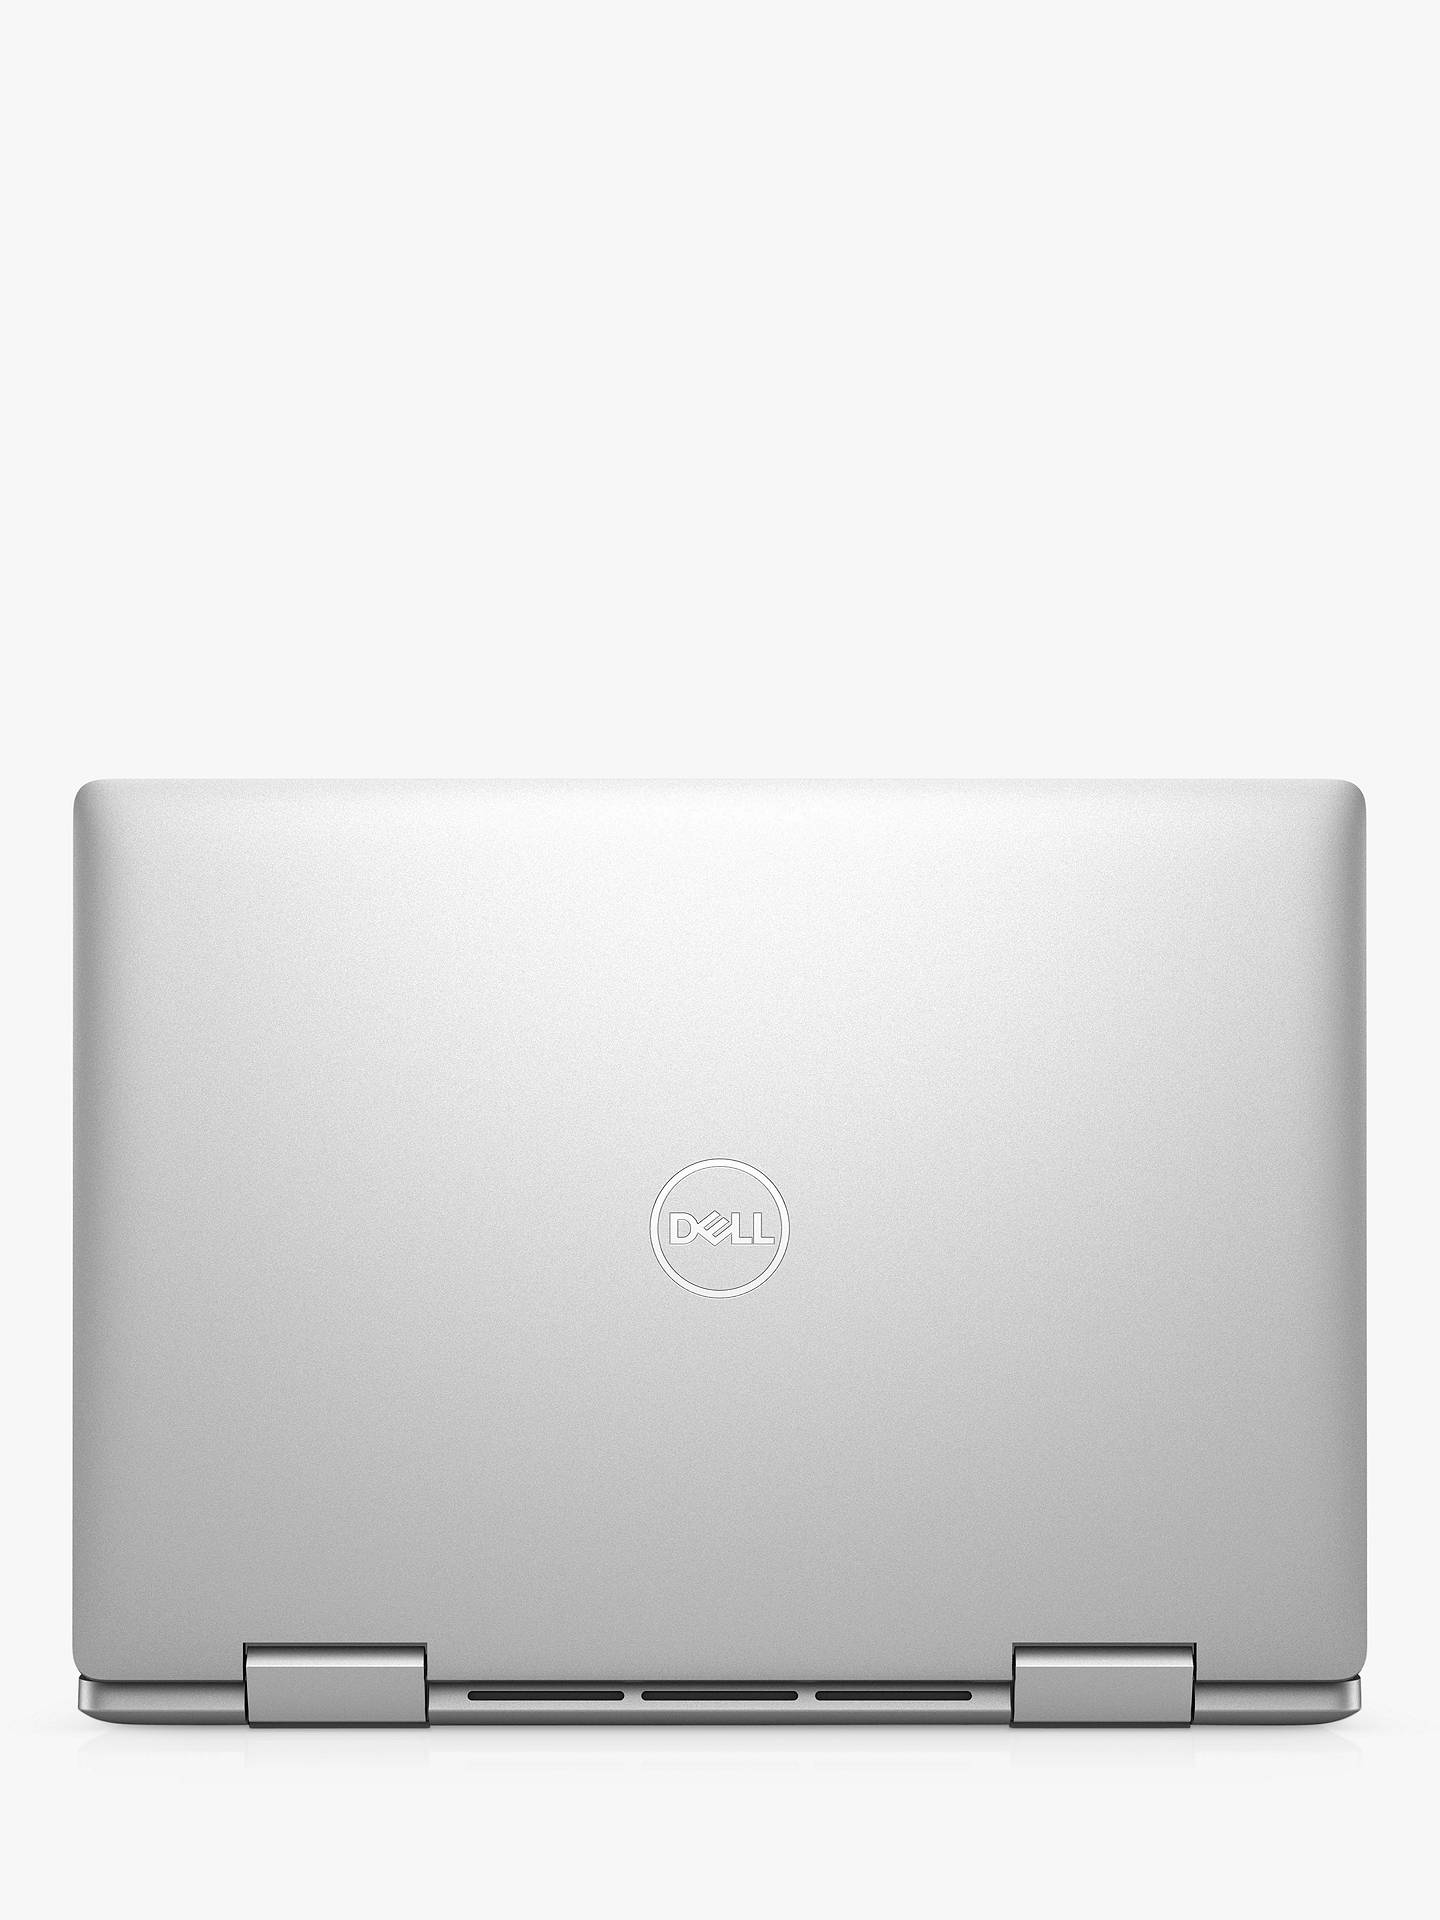 """Dell Inspiron 14 5482 Convertible Laptop, Intel Core i7, 16GB RAM, 512GB  SSD, 14"""" Full HD Touch Screen, Grey"""